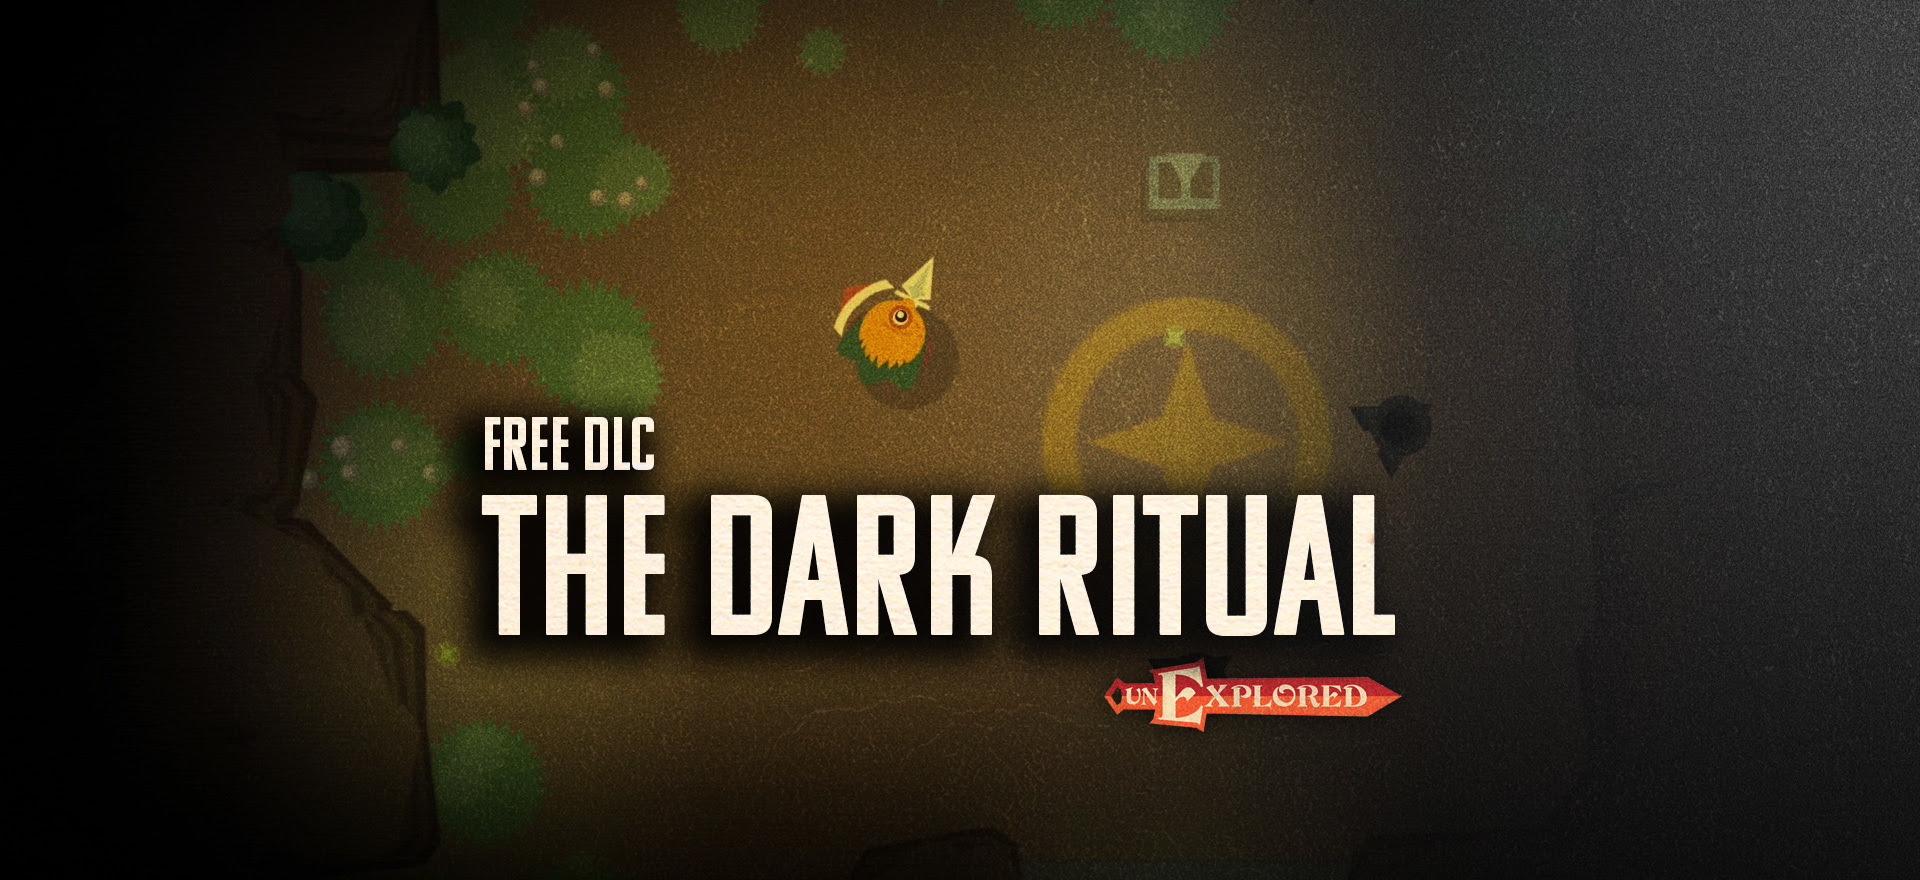 Unexplored The Dark Ritual Free Download